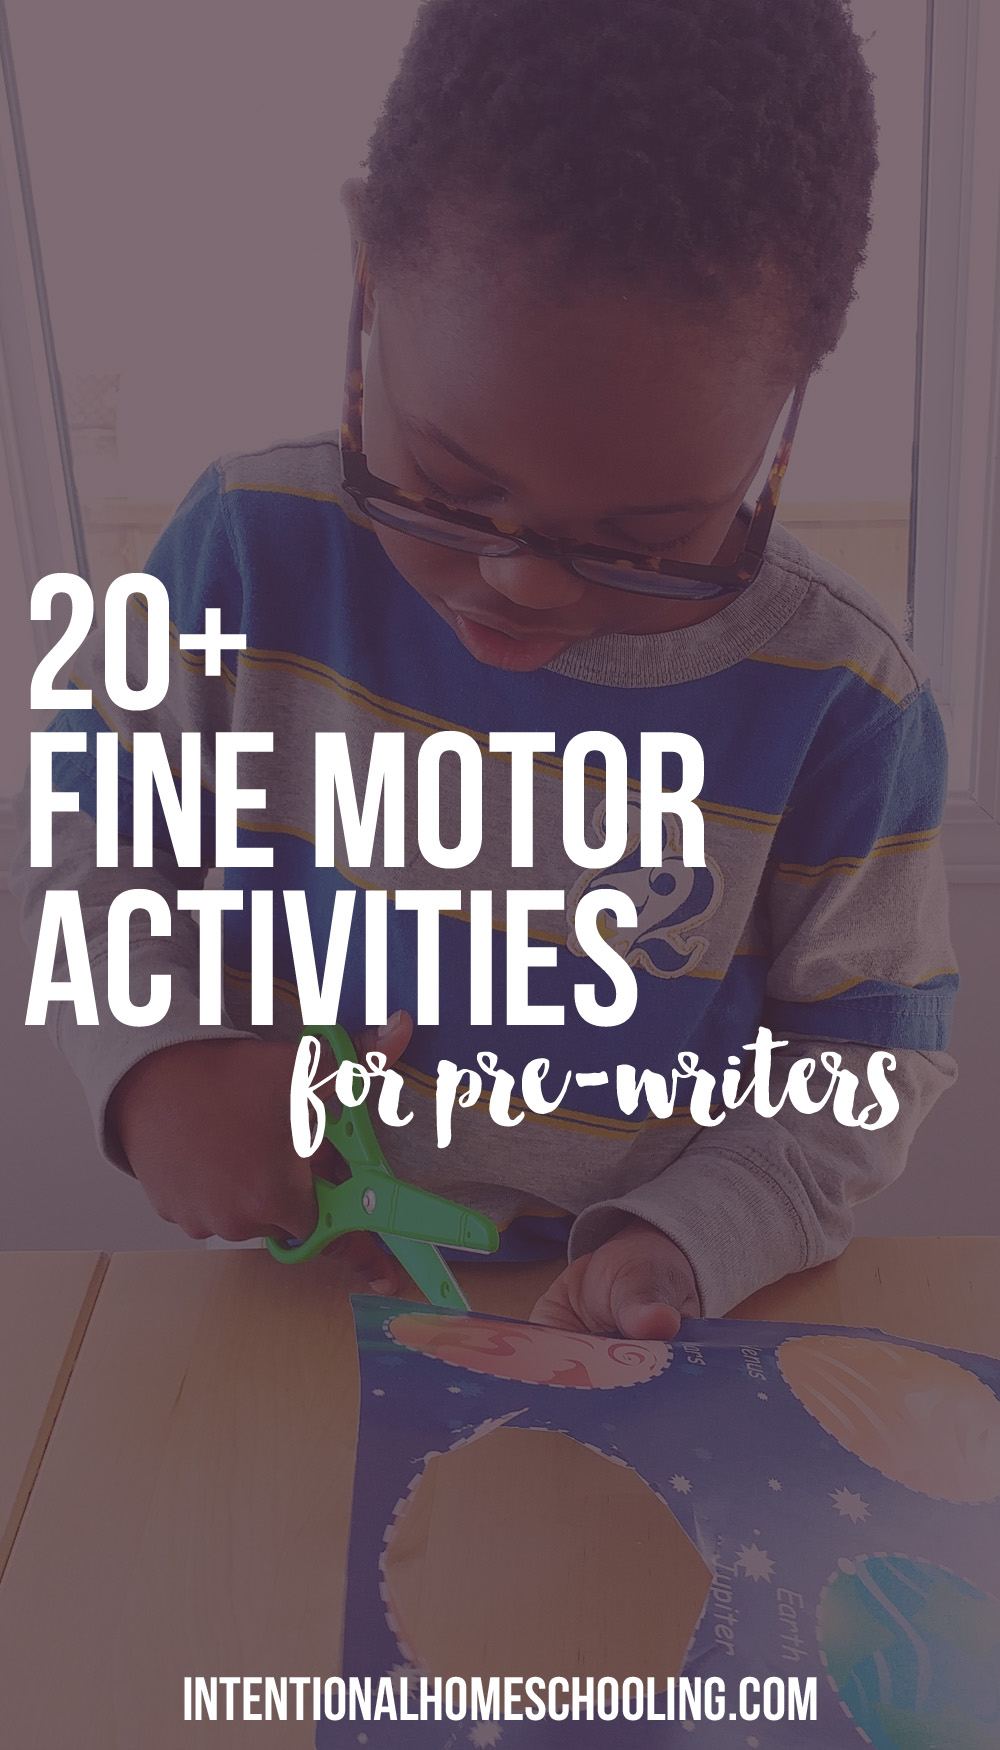 More than 20 activities to help develop fine motor skills in preschool pre-writers.